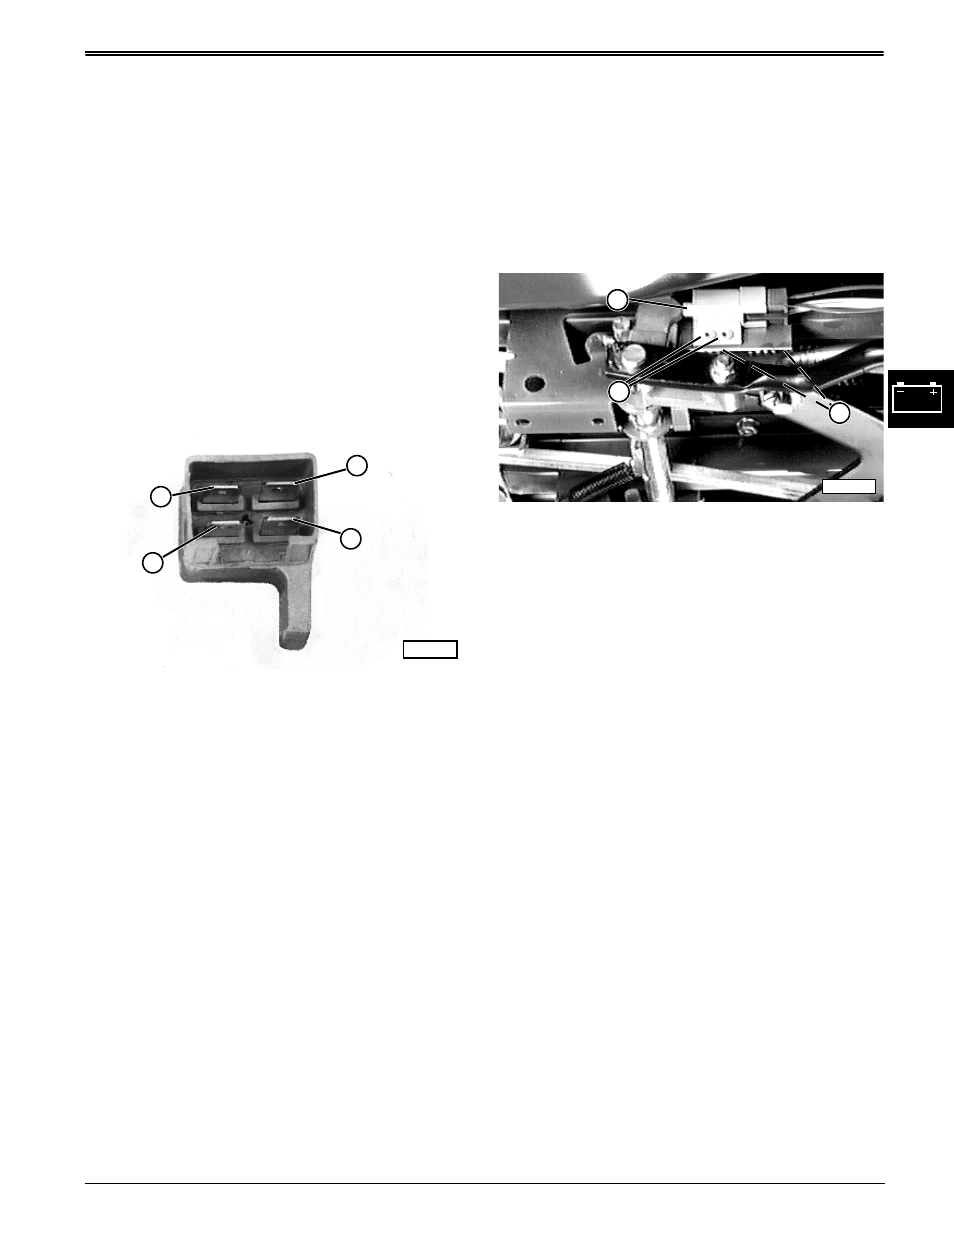 Brake Pedal Park Switch Tests Adjustment John Did You Check Your Are Able To Shift Out Of Deere Stx38 User Manual Page 153 314